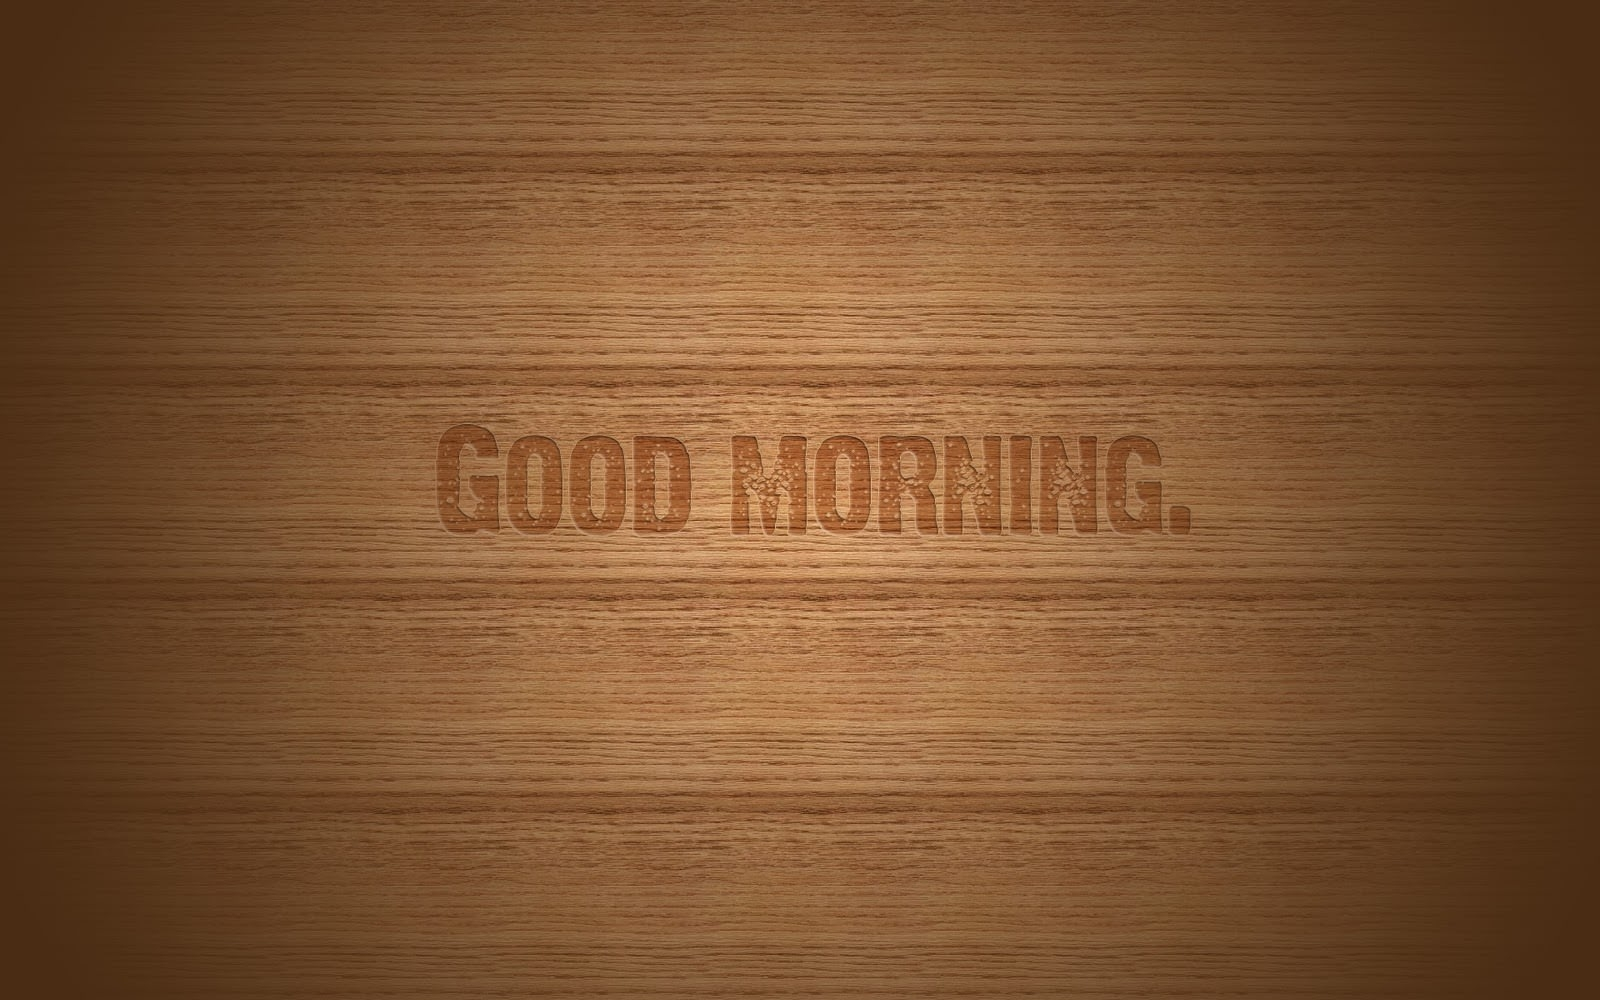 Good Morning on HD Wood Background